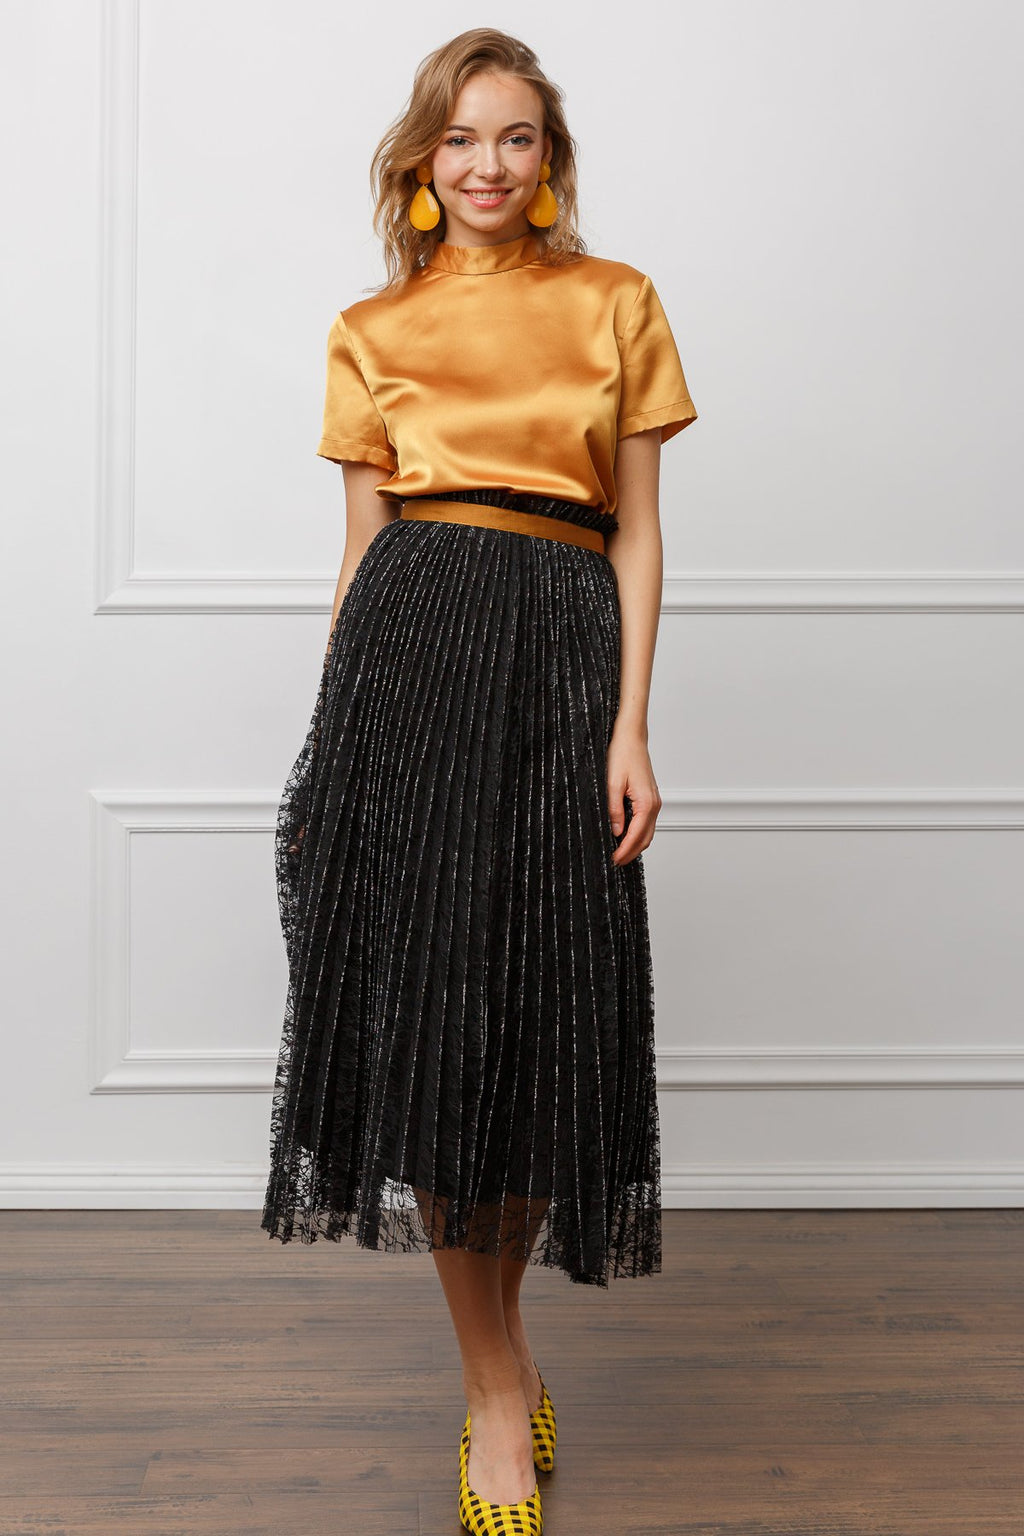 Rochelle Skirt in Skirts by J.ING - an L.A based women's fashion line